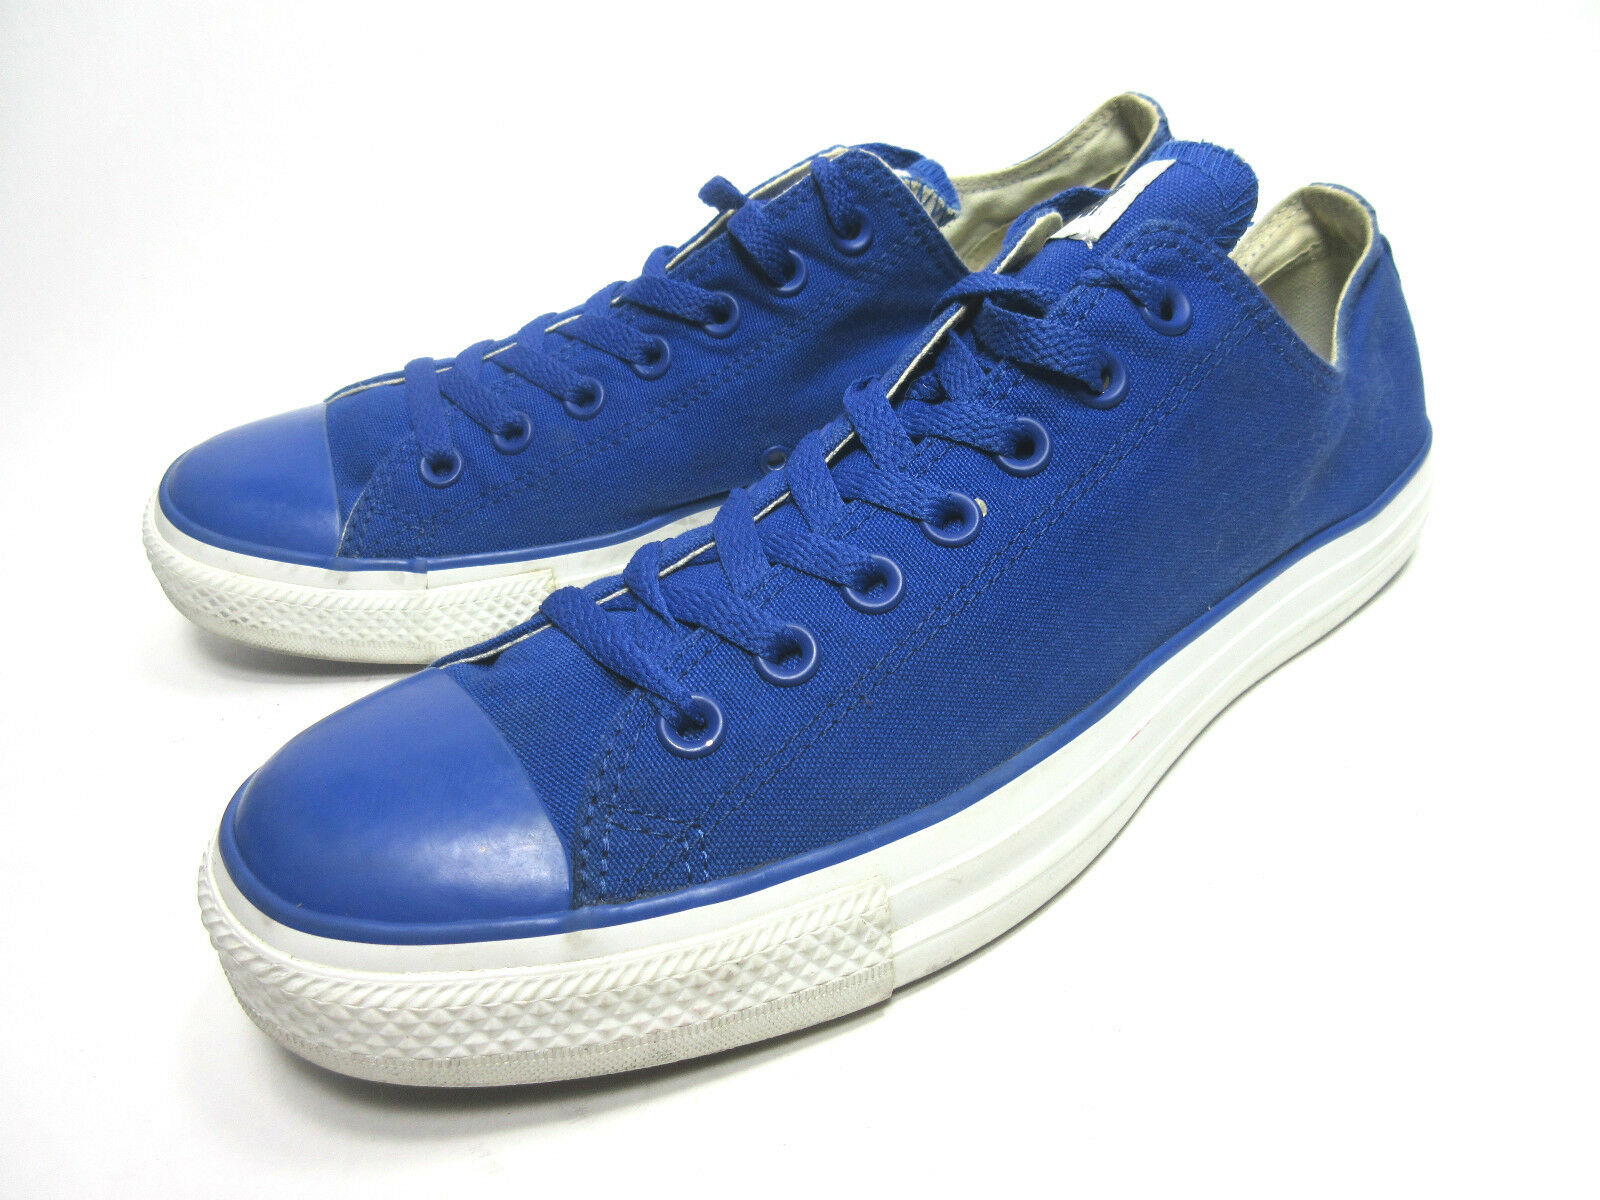 Converse Chuck Taylor All Star Low Top Top Top Royal Blau Canvas Turnschuhe schuhe 11 f163a8